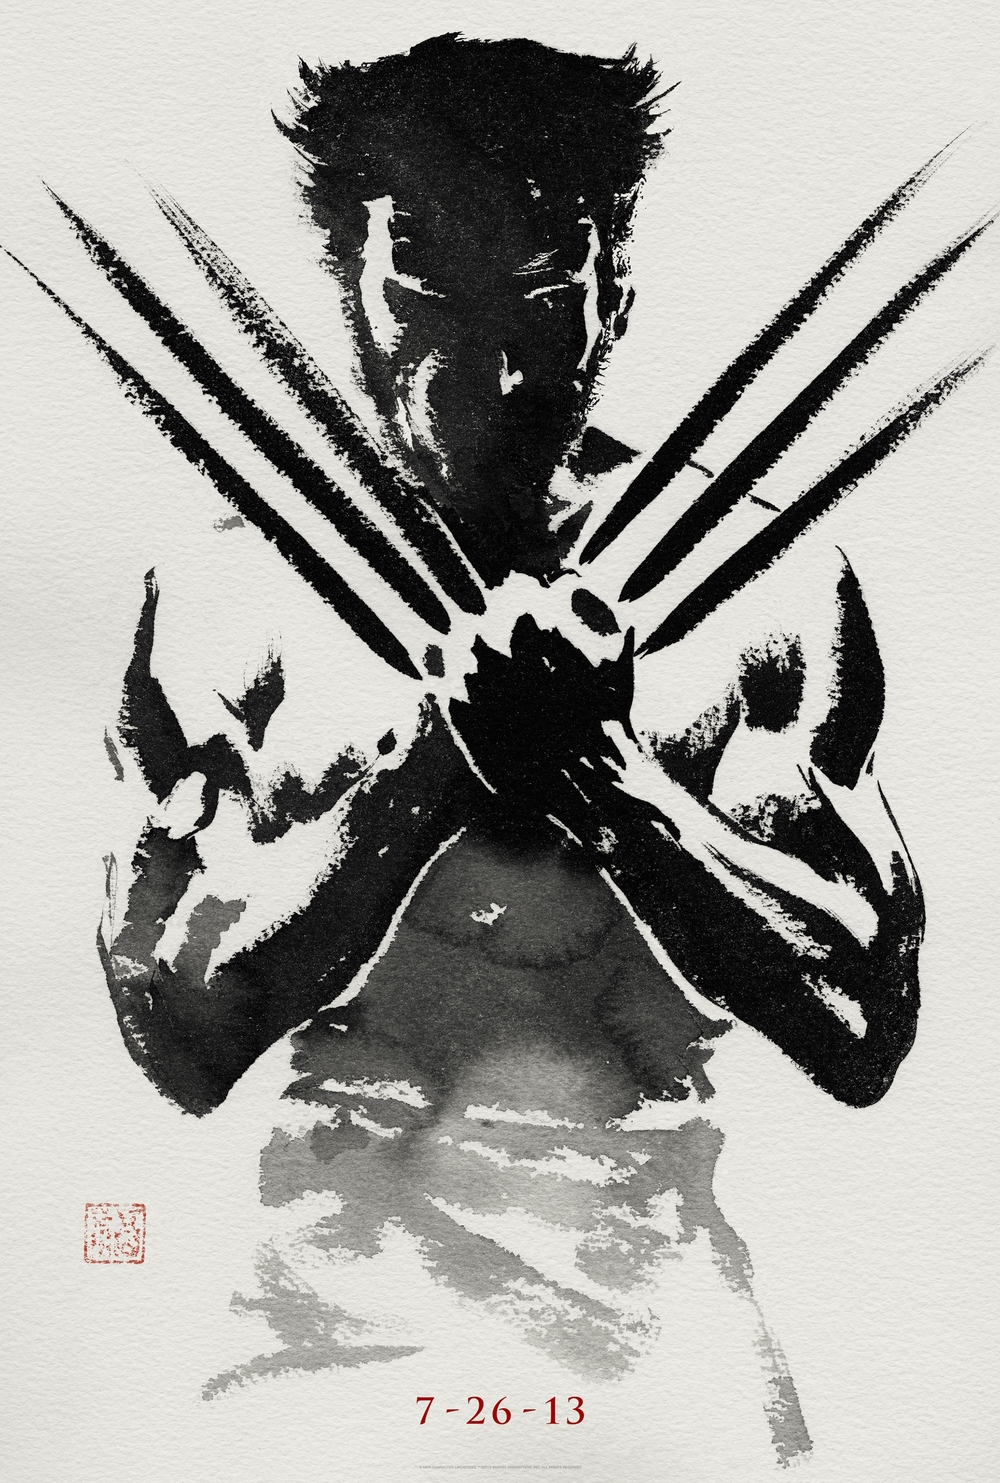 wolverine-movie-poster.jpg